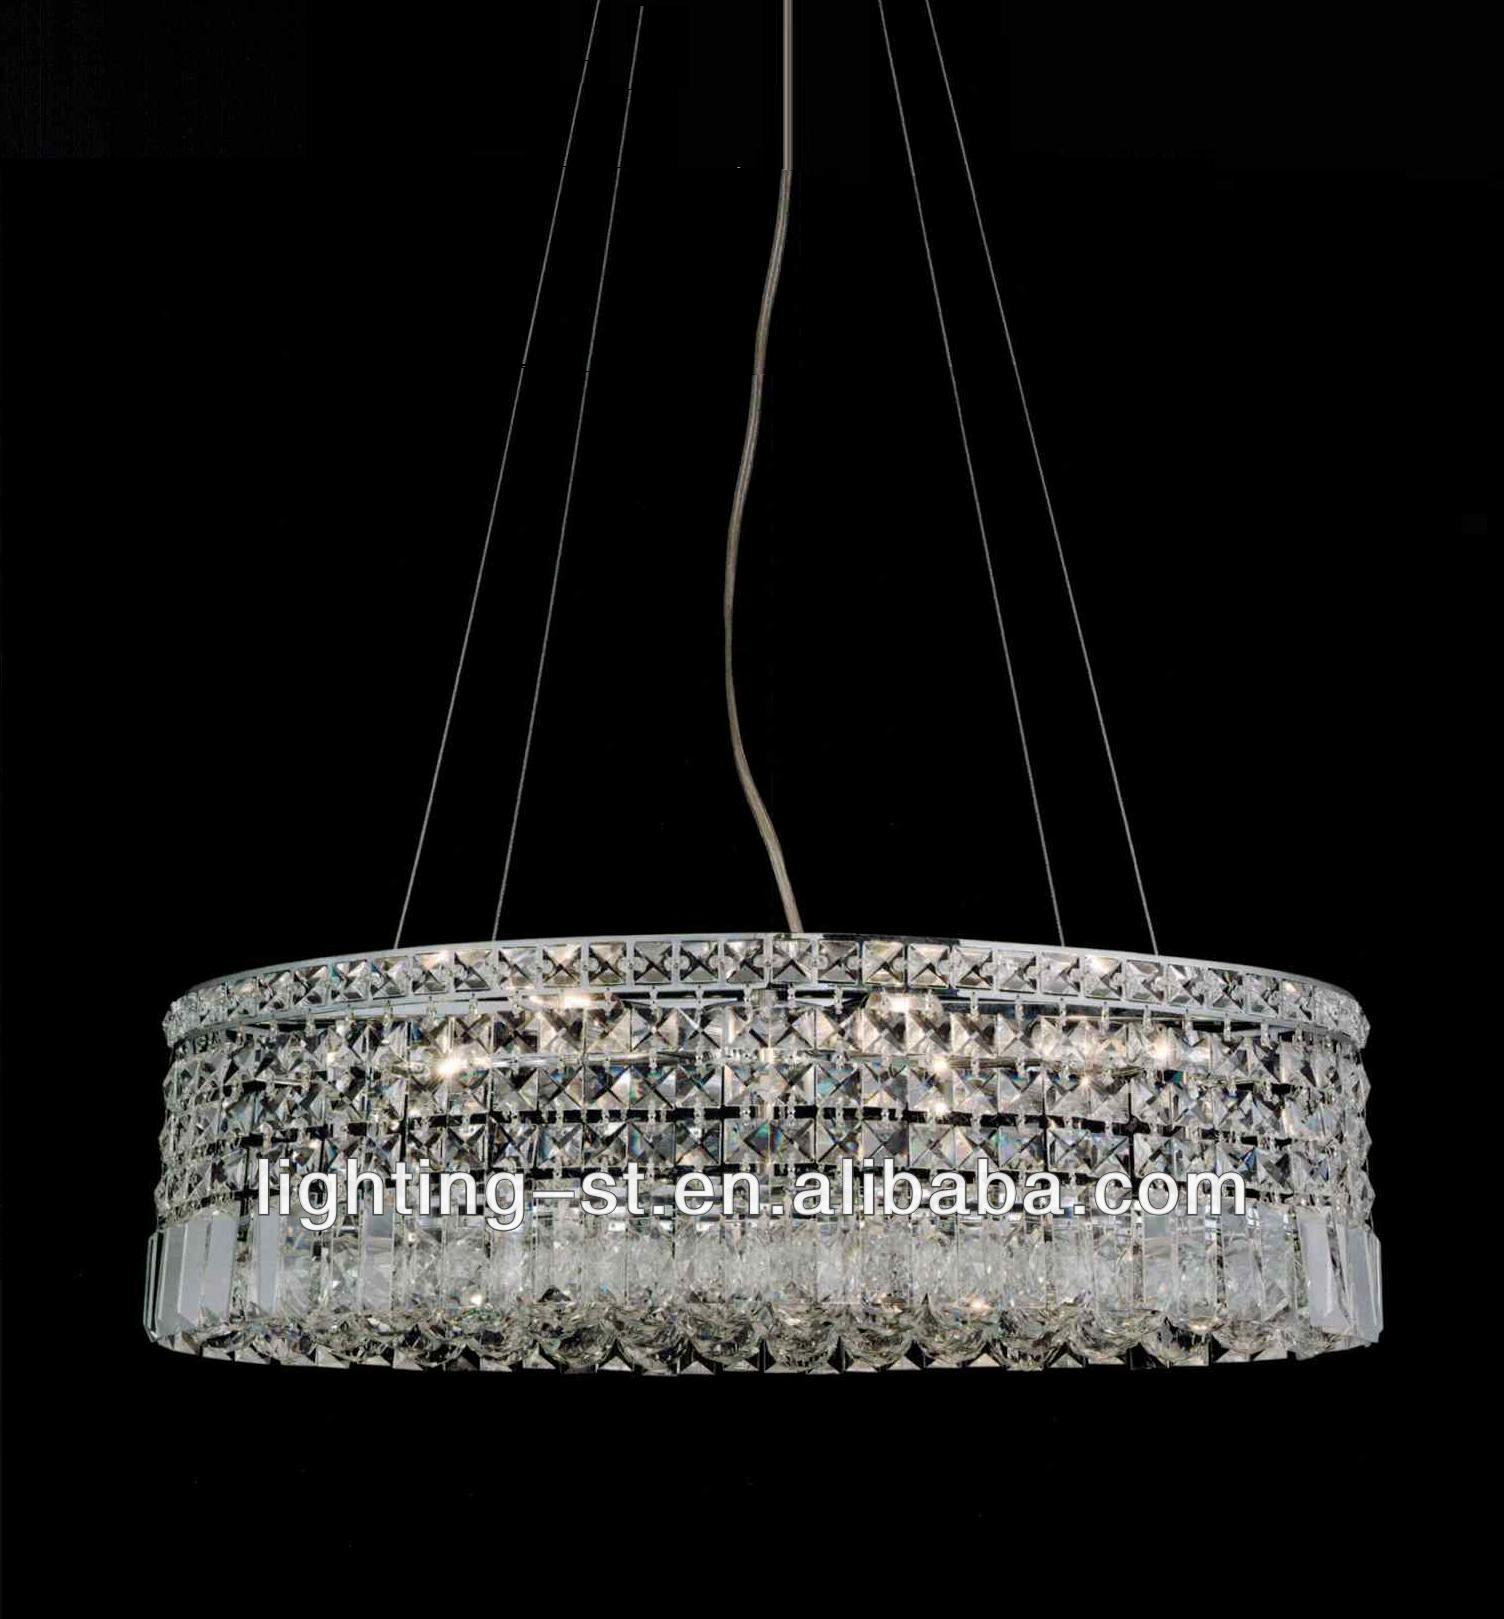 Crystal chandelier raindrop crystal chandelier raindrop suppliers crystal chandelier raindrop crystal chandelier raindrop suppliers and manufacturers at alibaba arubaitofo Choice Image